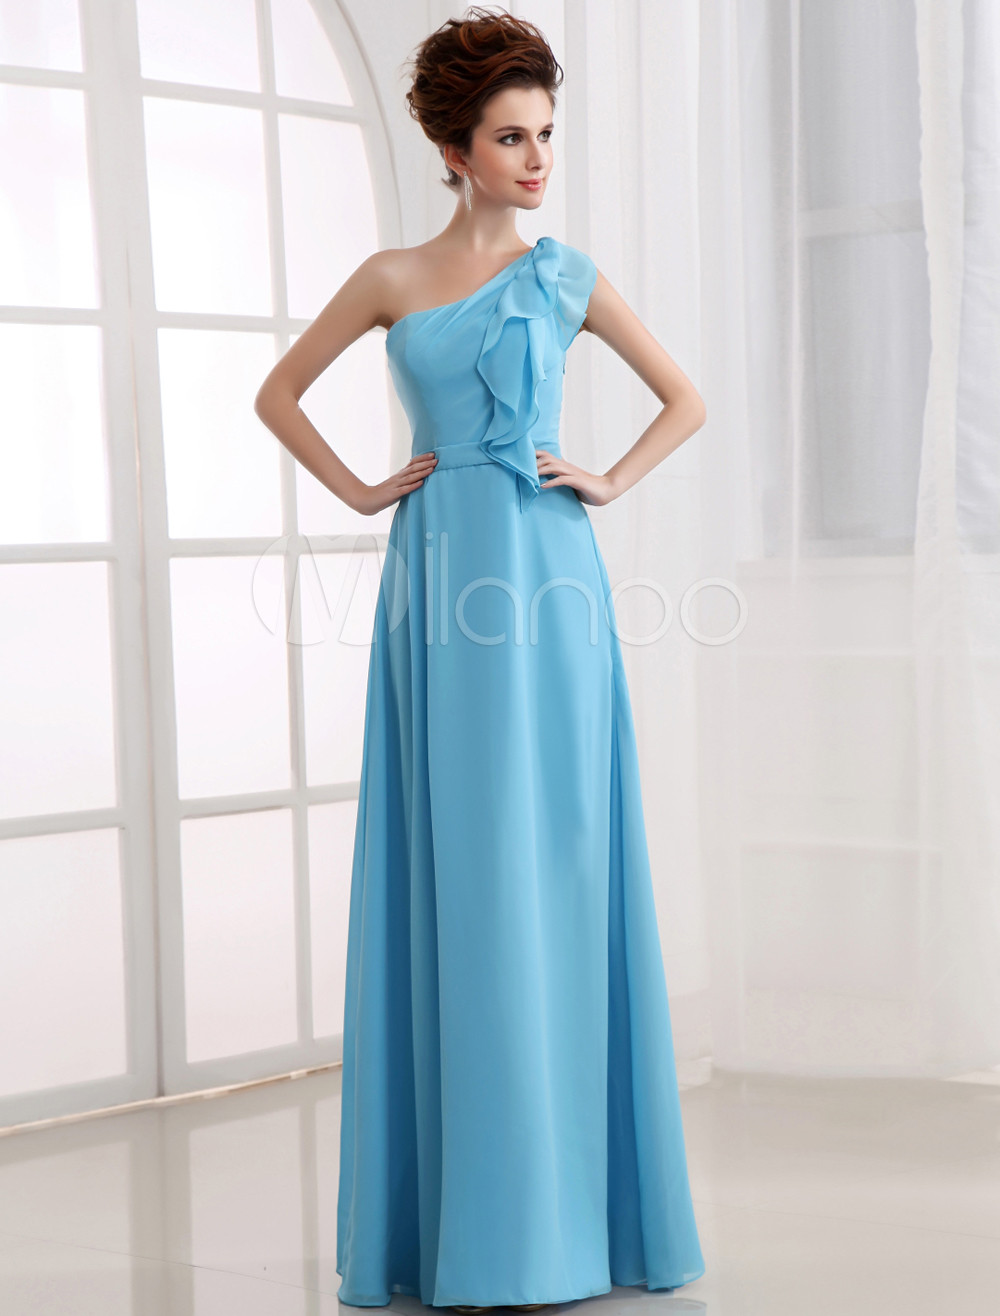 Aqua Bridesmaid Dress One Shoulder Ruffle Chiffon Floor Length Prom Dress